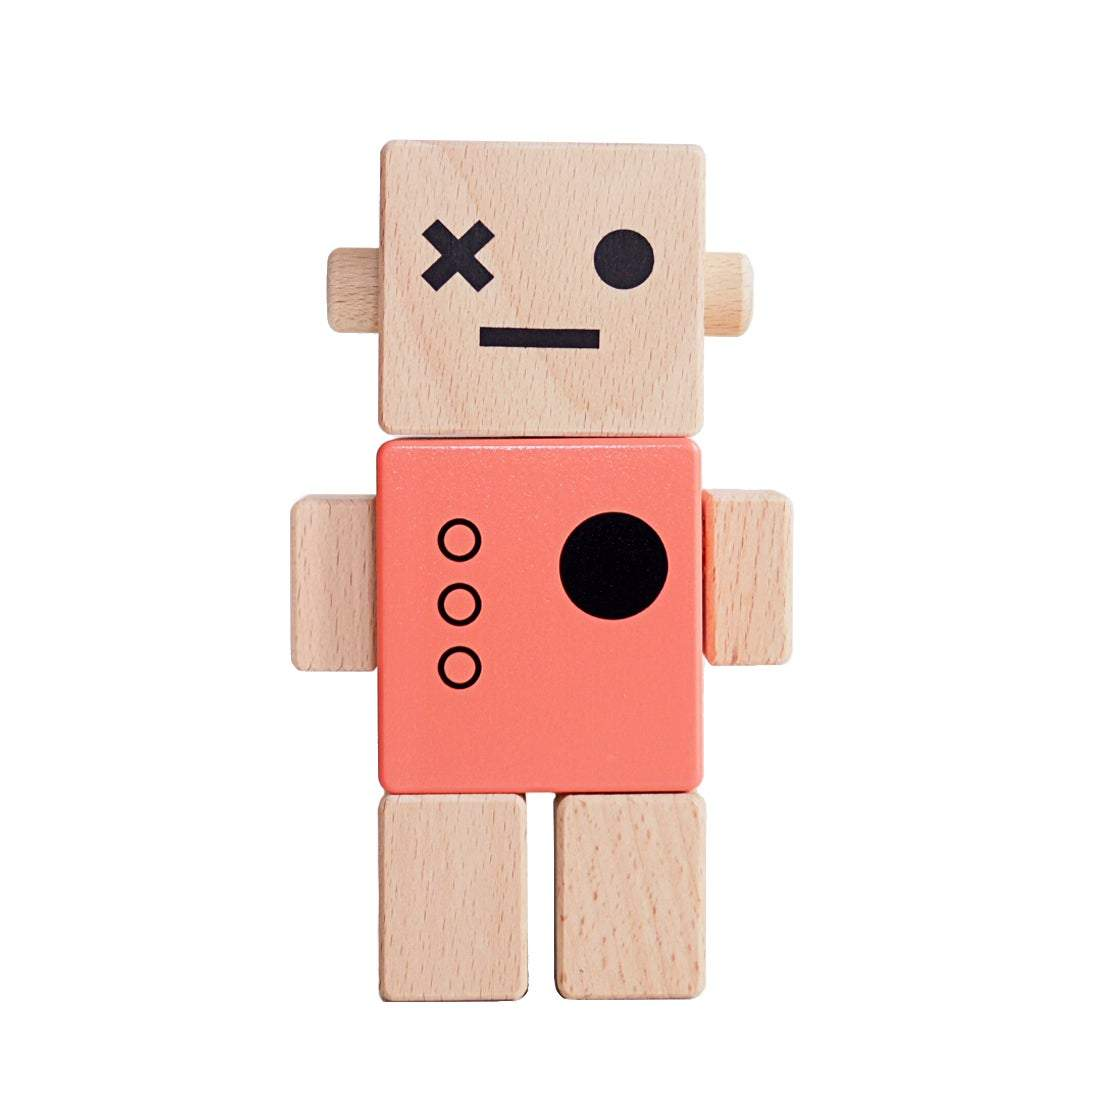 Wooden Robot Coral - thetinycrate